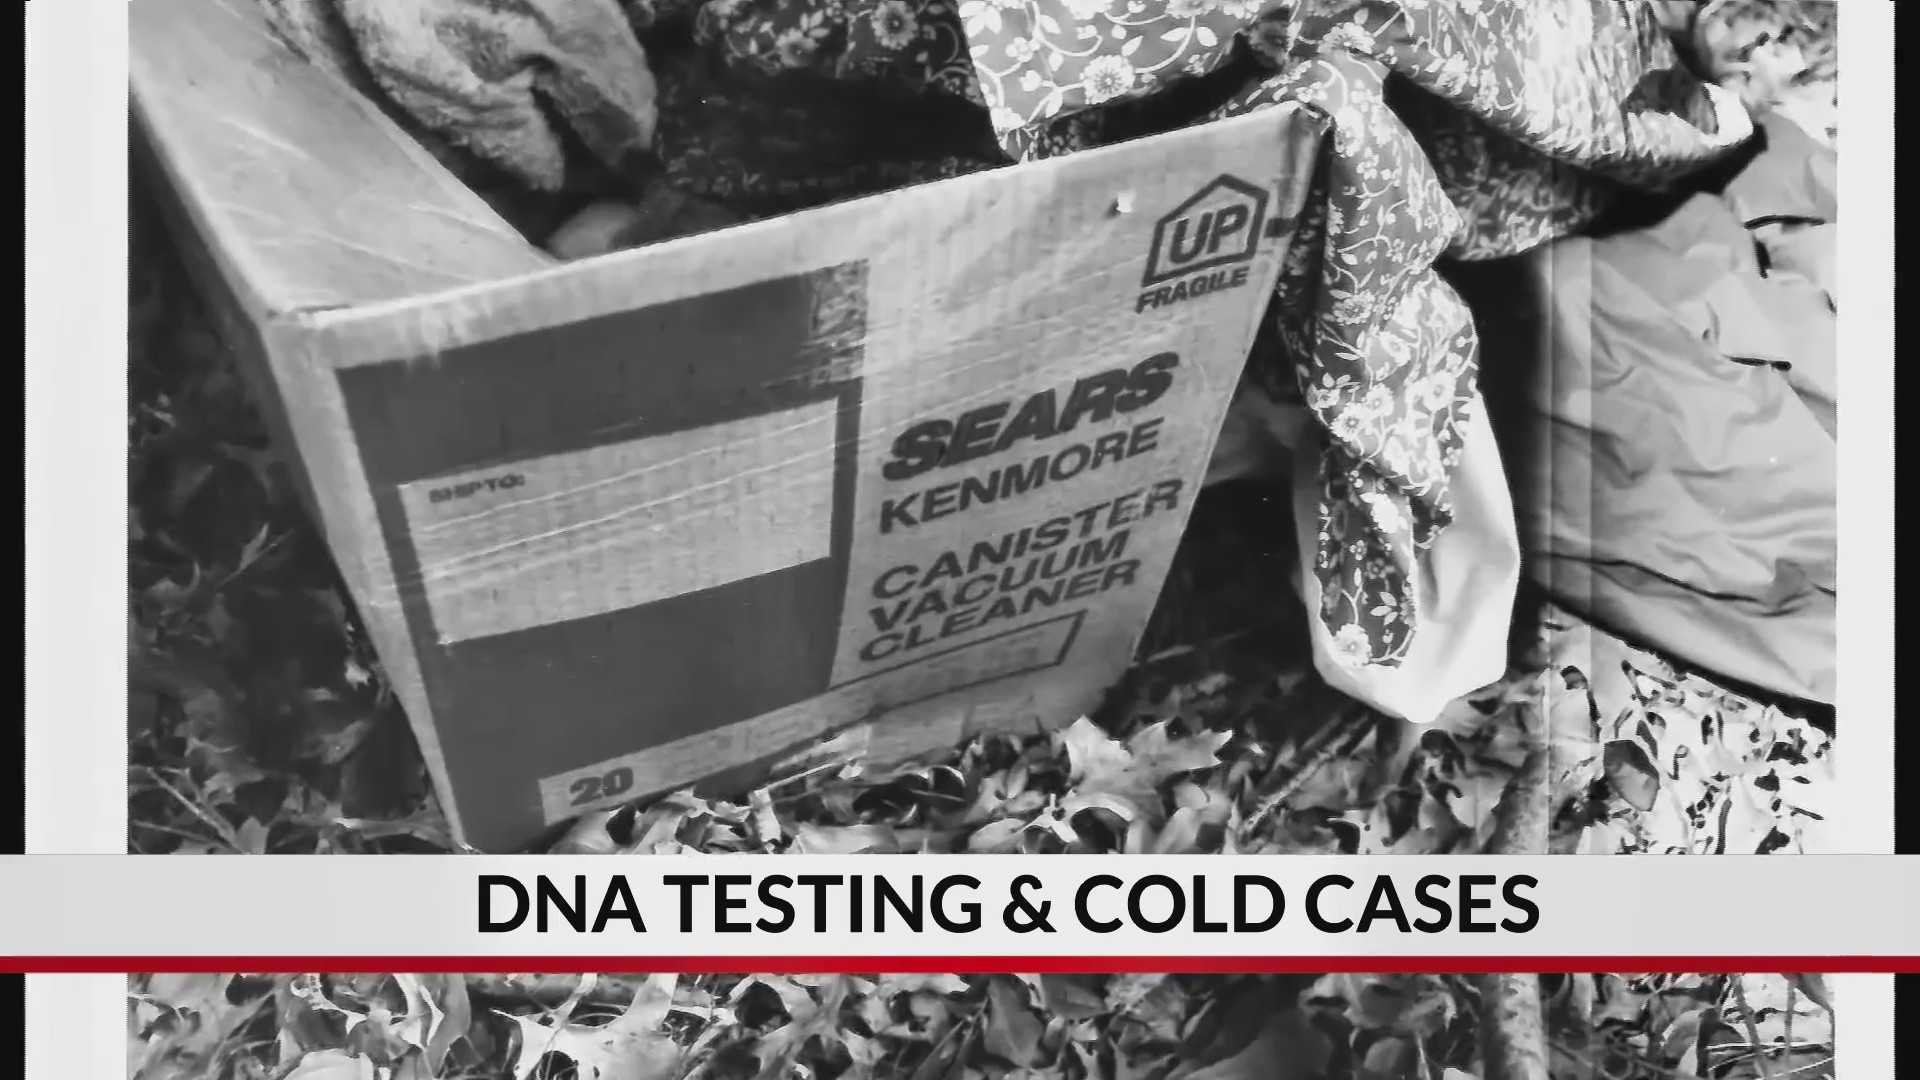 DNA_testing_and_cold_cases_1_20190416113038